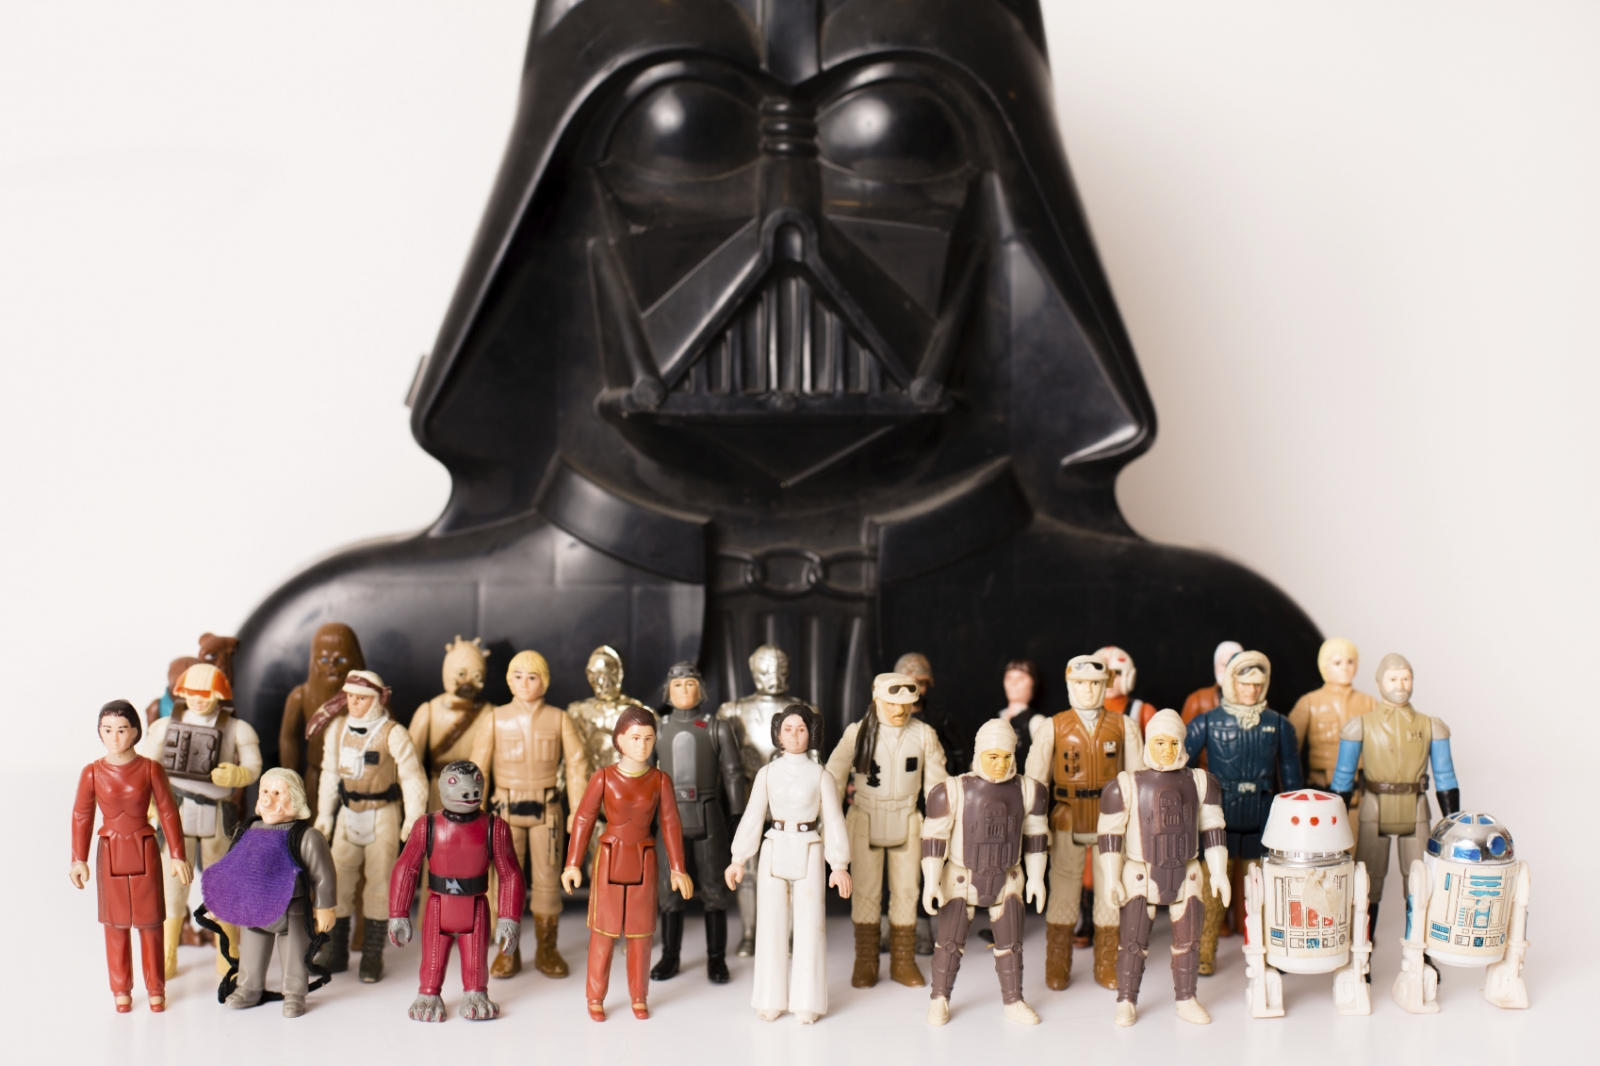 An obsession with collecting toys